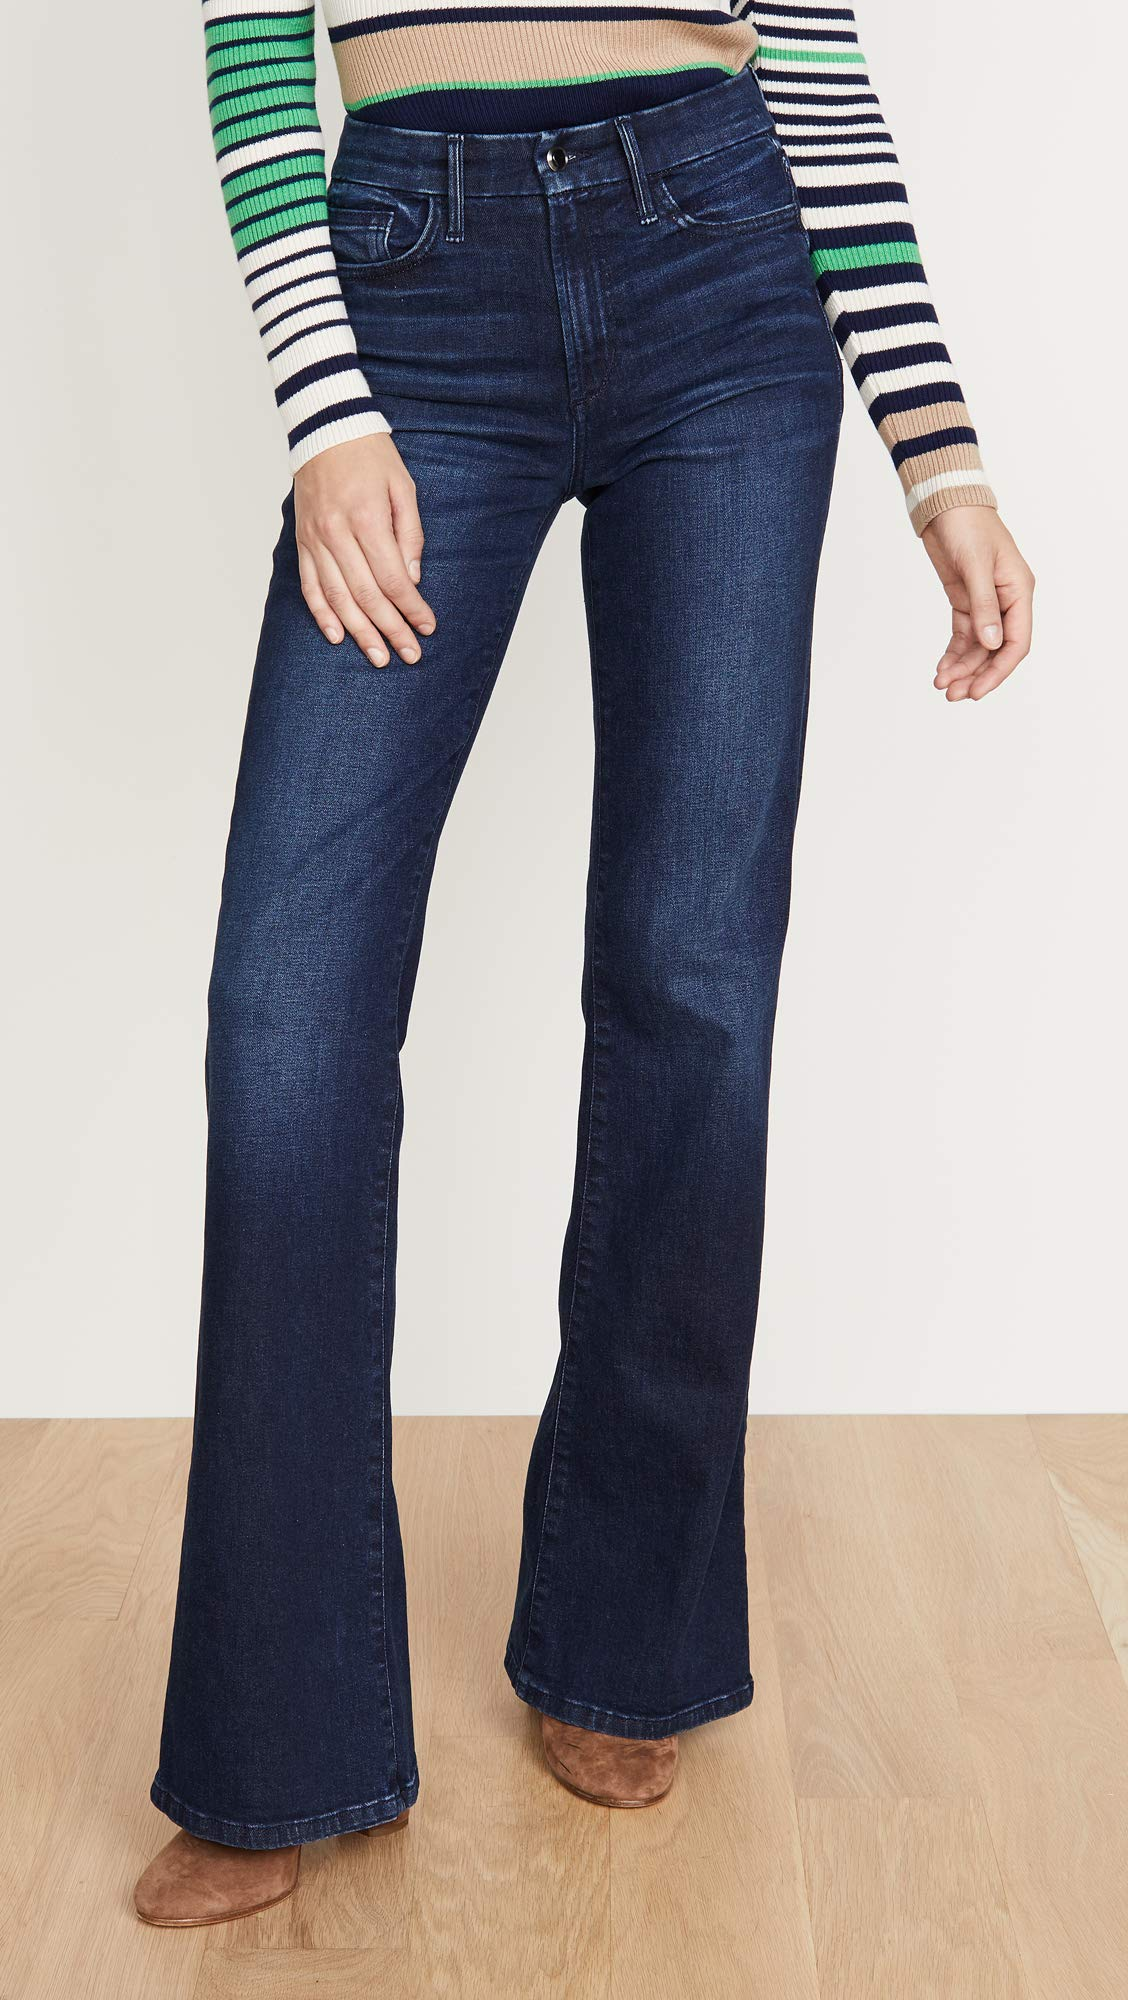 Joe's Jeans Women's The Molly Flare, Badlands, 34